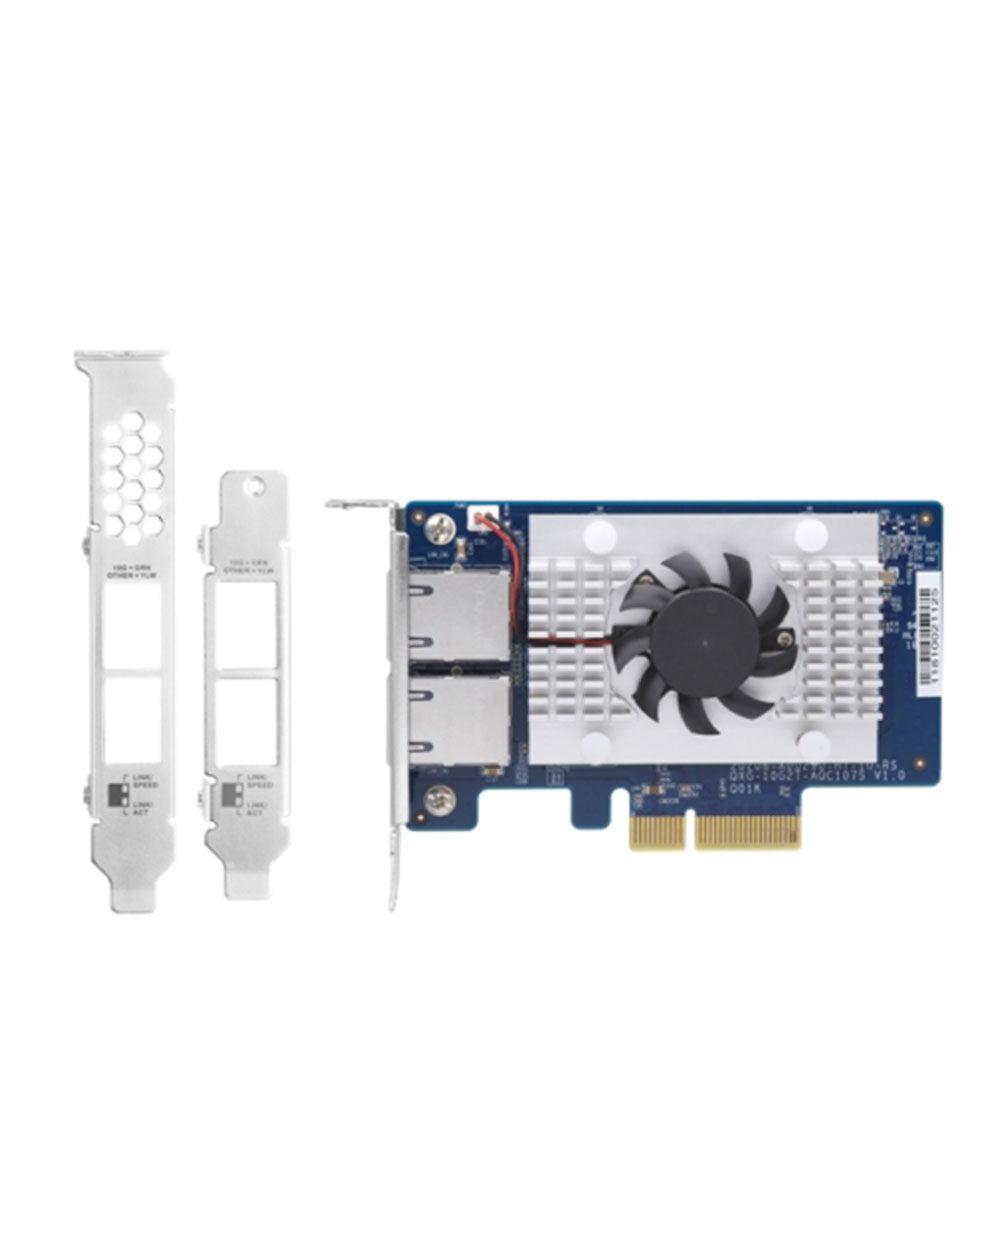 QXG-10G2T-107 Dual-port BASET 10GbE network expansion card